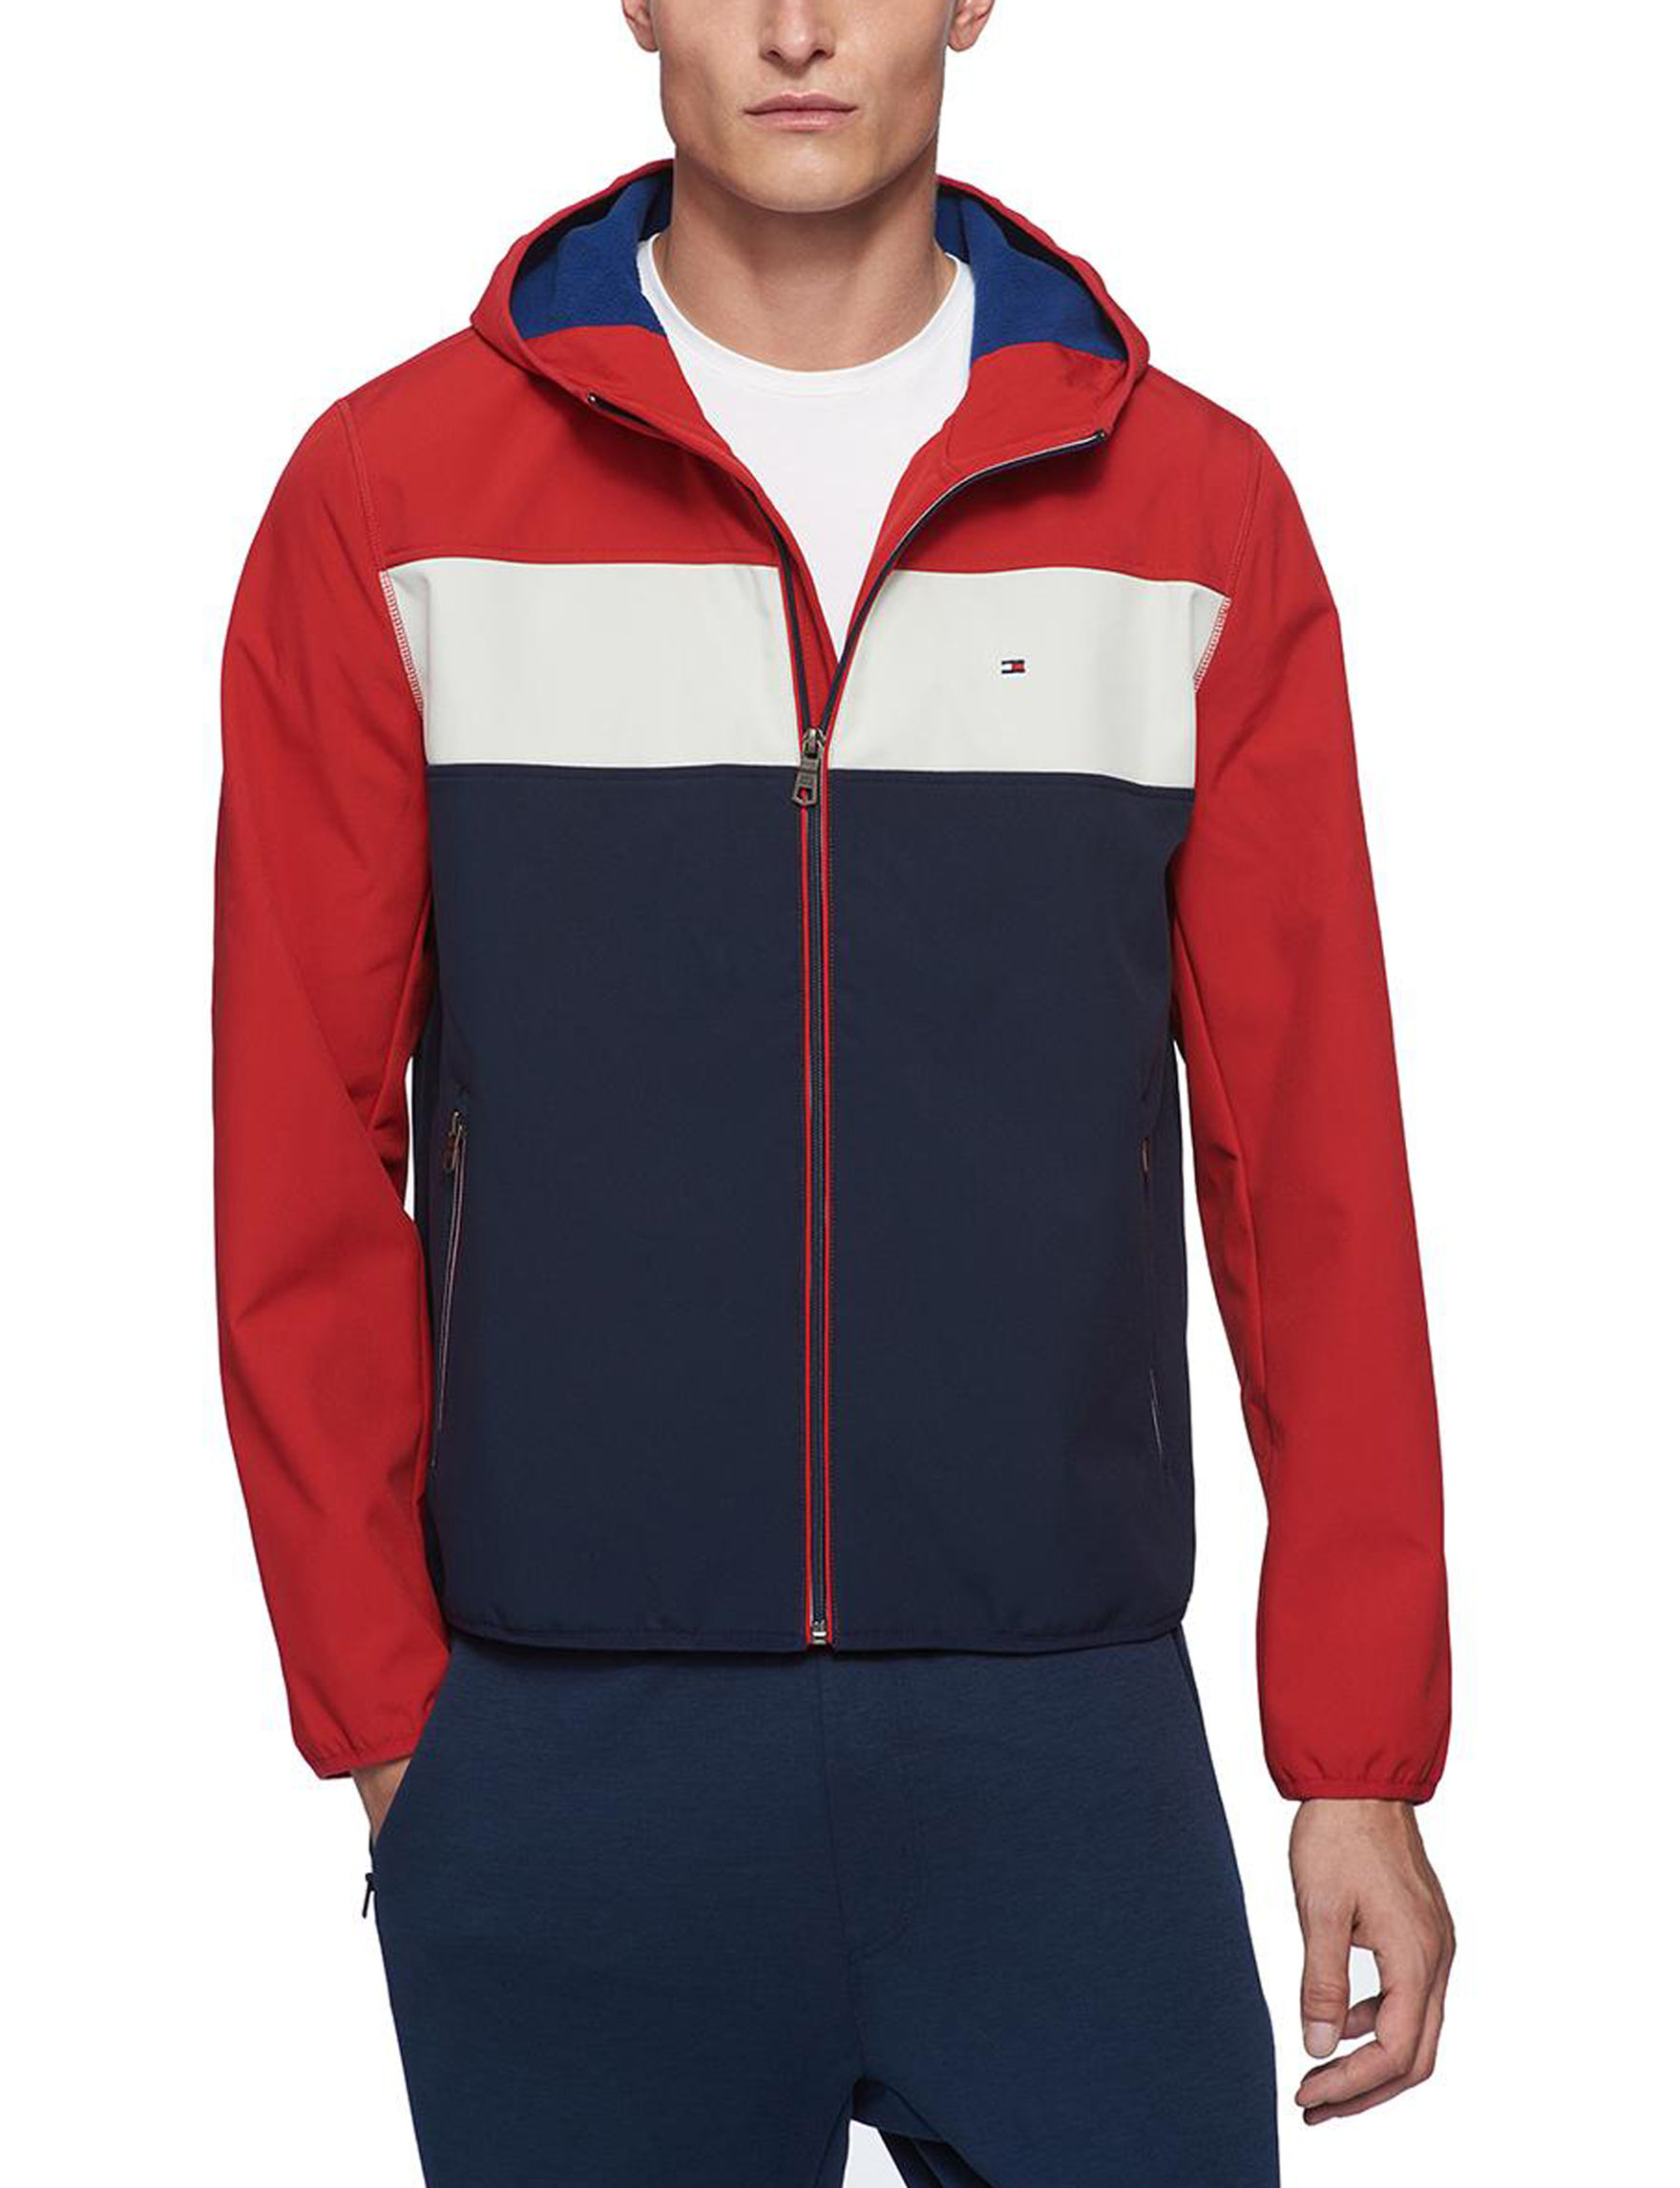 Tommy Hilfiger Red / Multi Fleece & Soft Shell Jackets